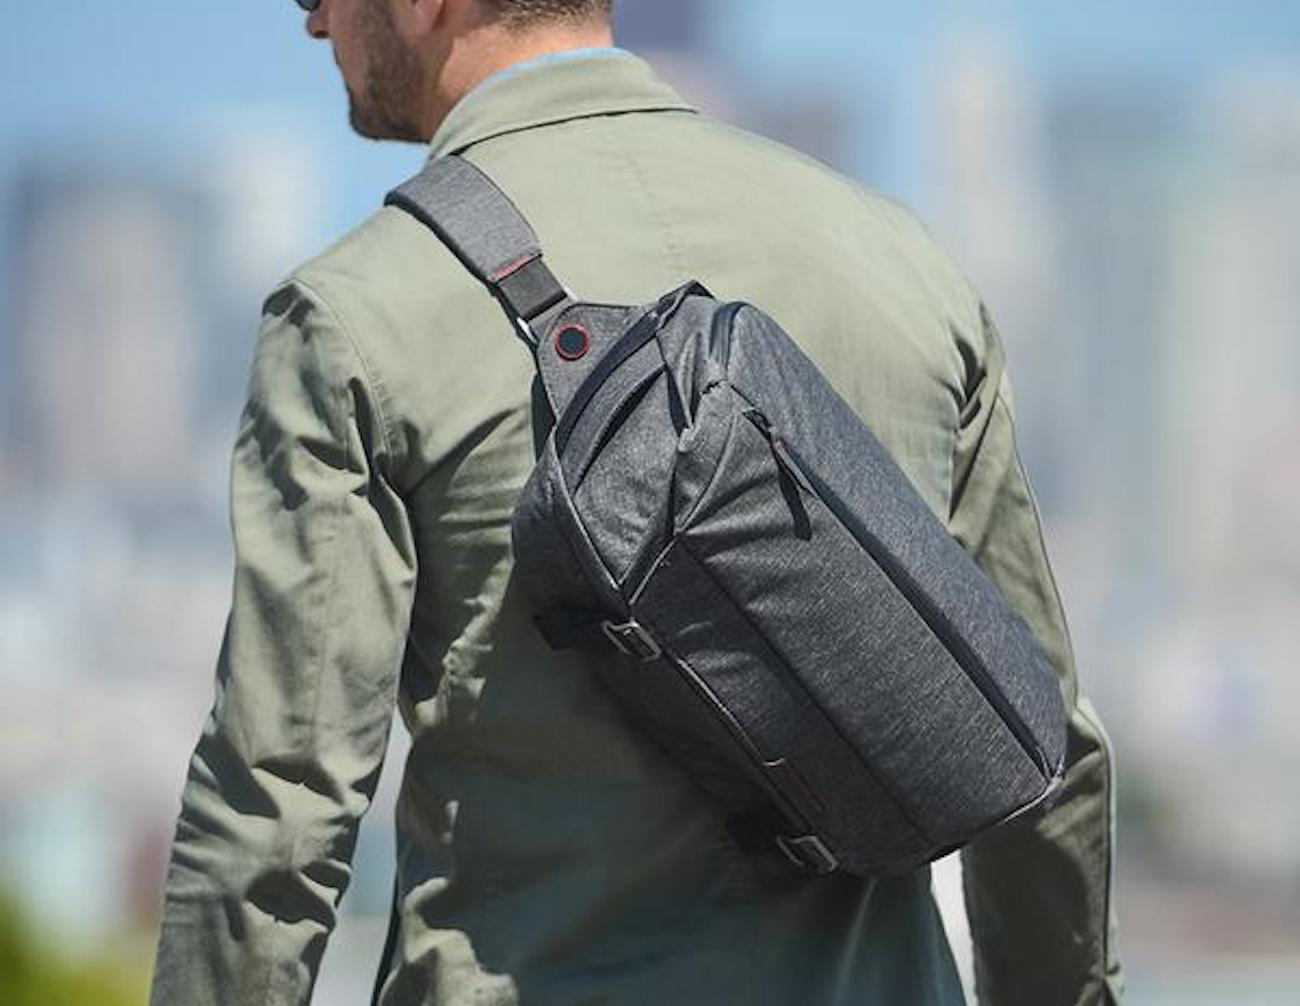 Peak Design Peak Design Everyday Sling Bag